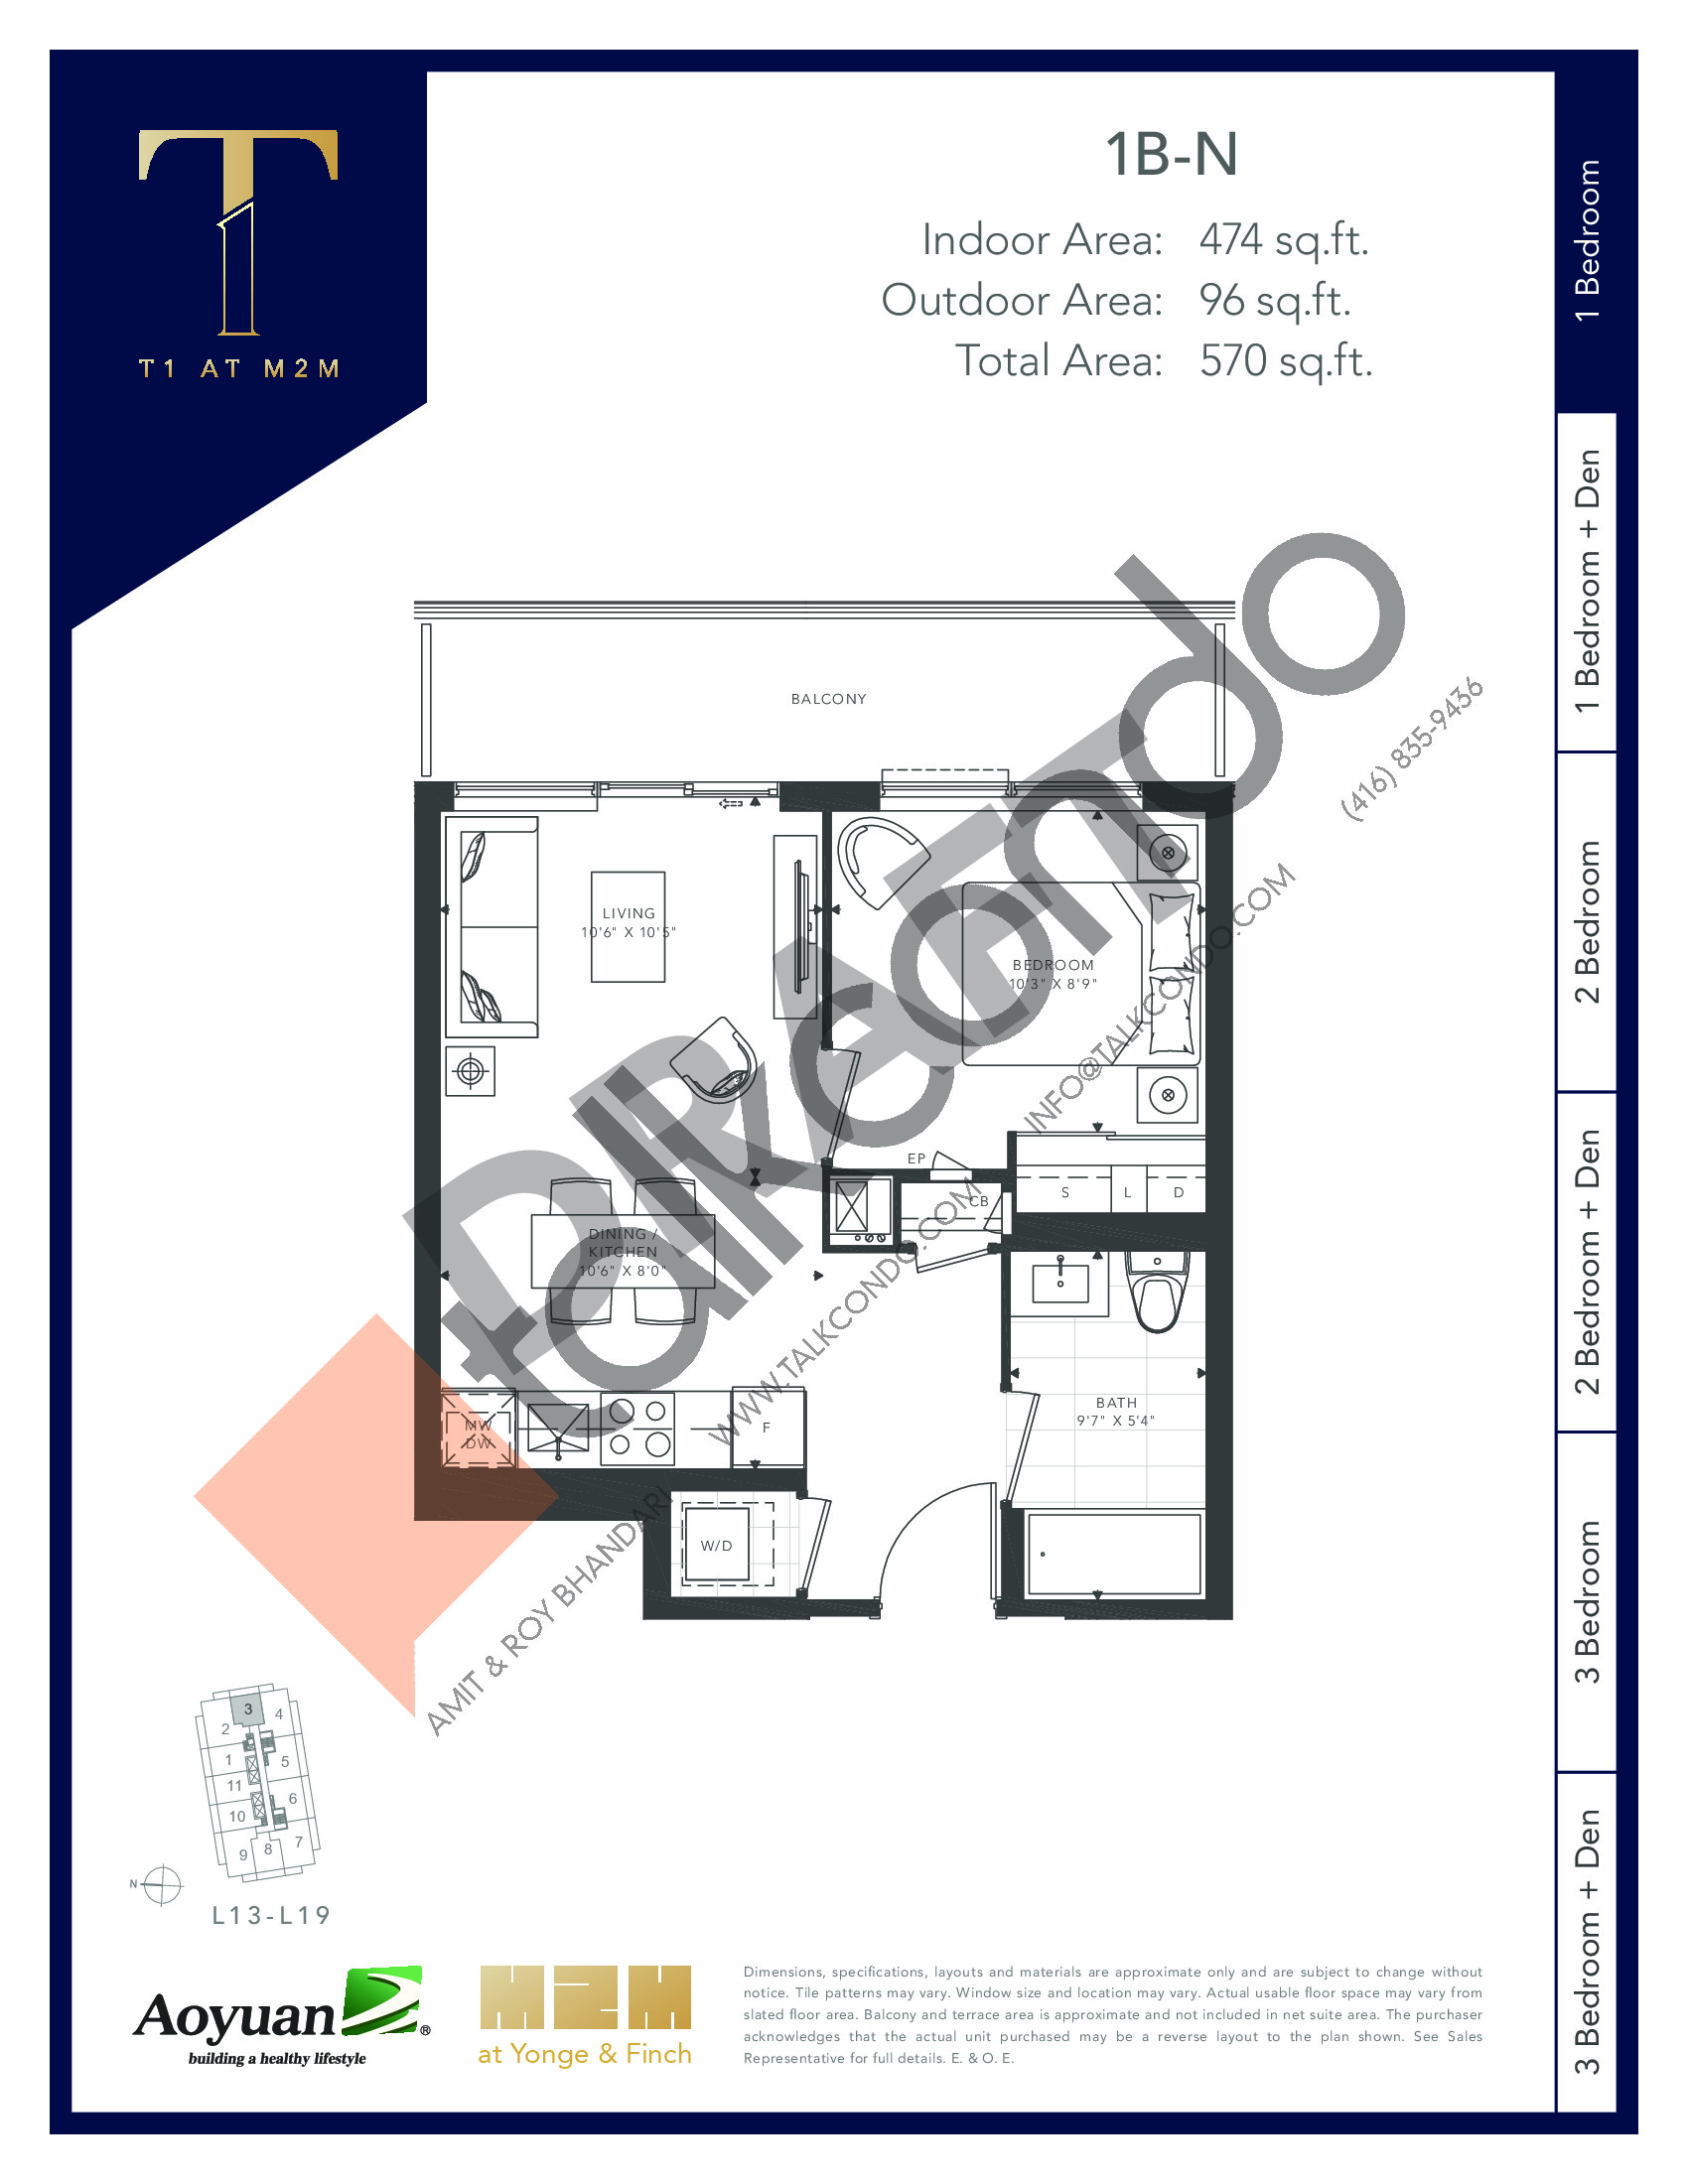 1B-N (Tower) Floor Plan at T1 at M2M Condos - 474 sq.ft